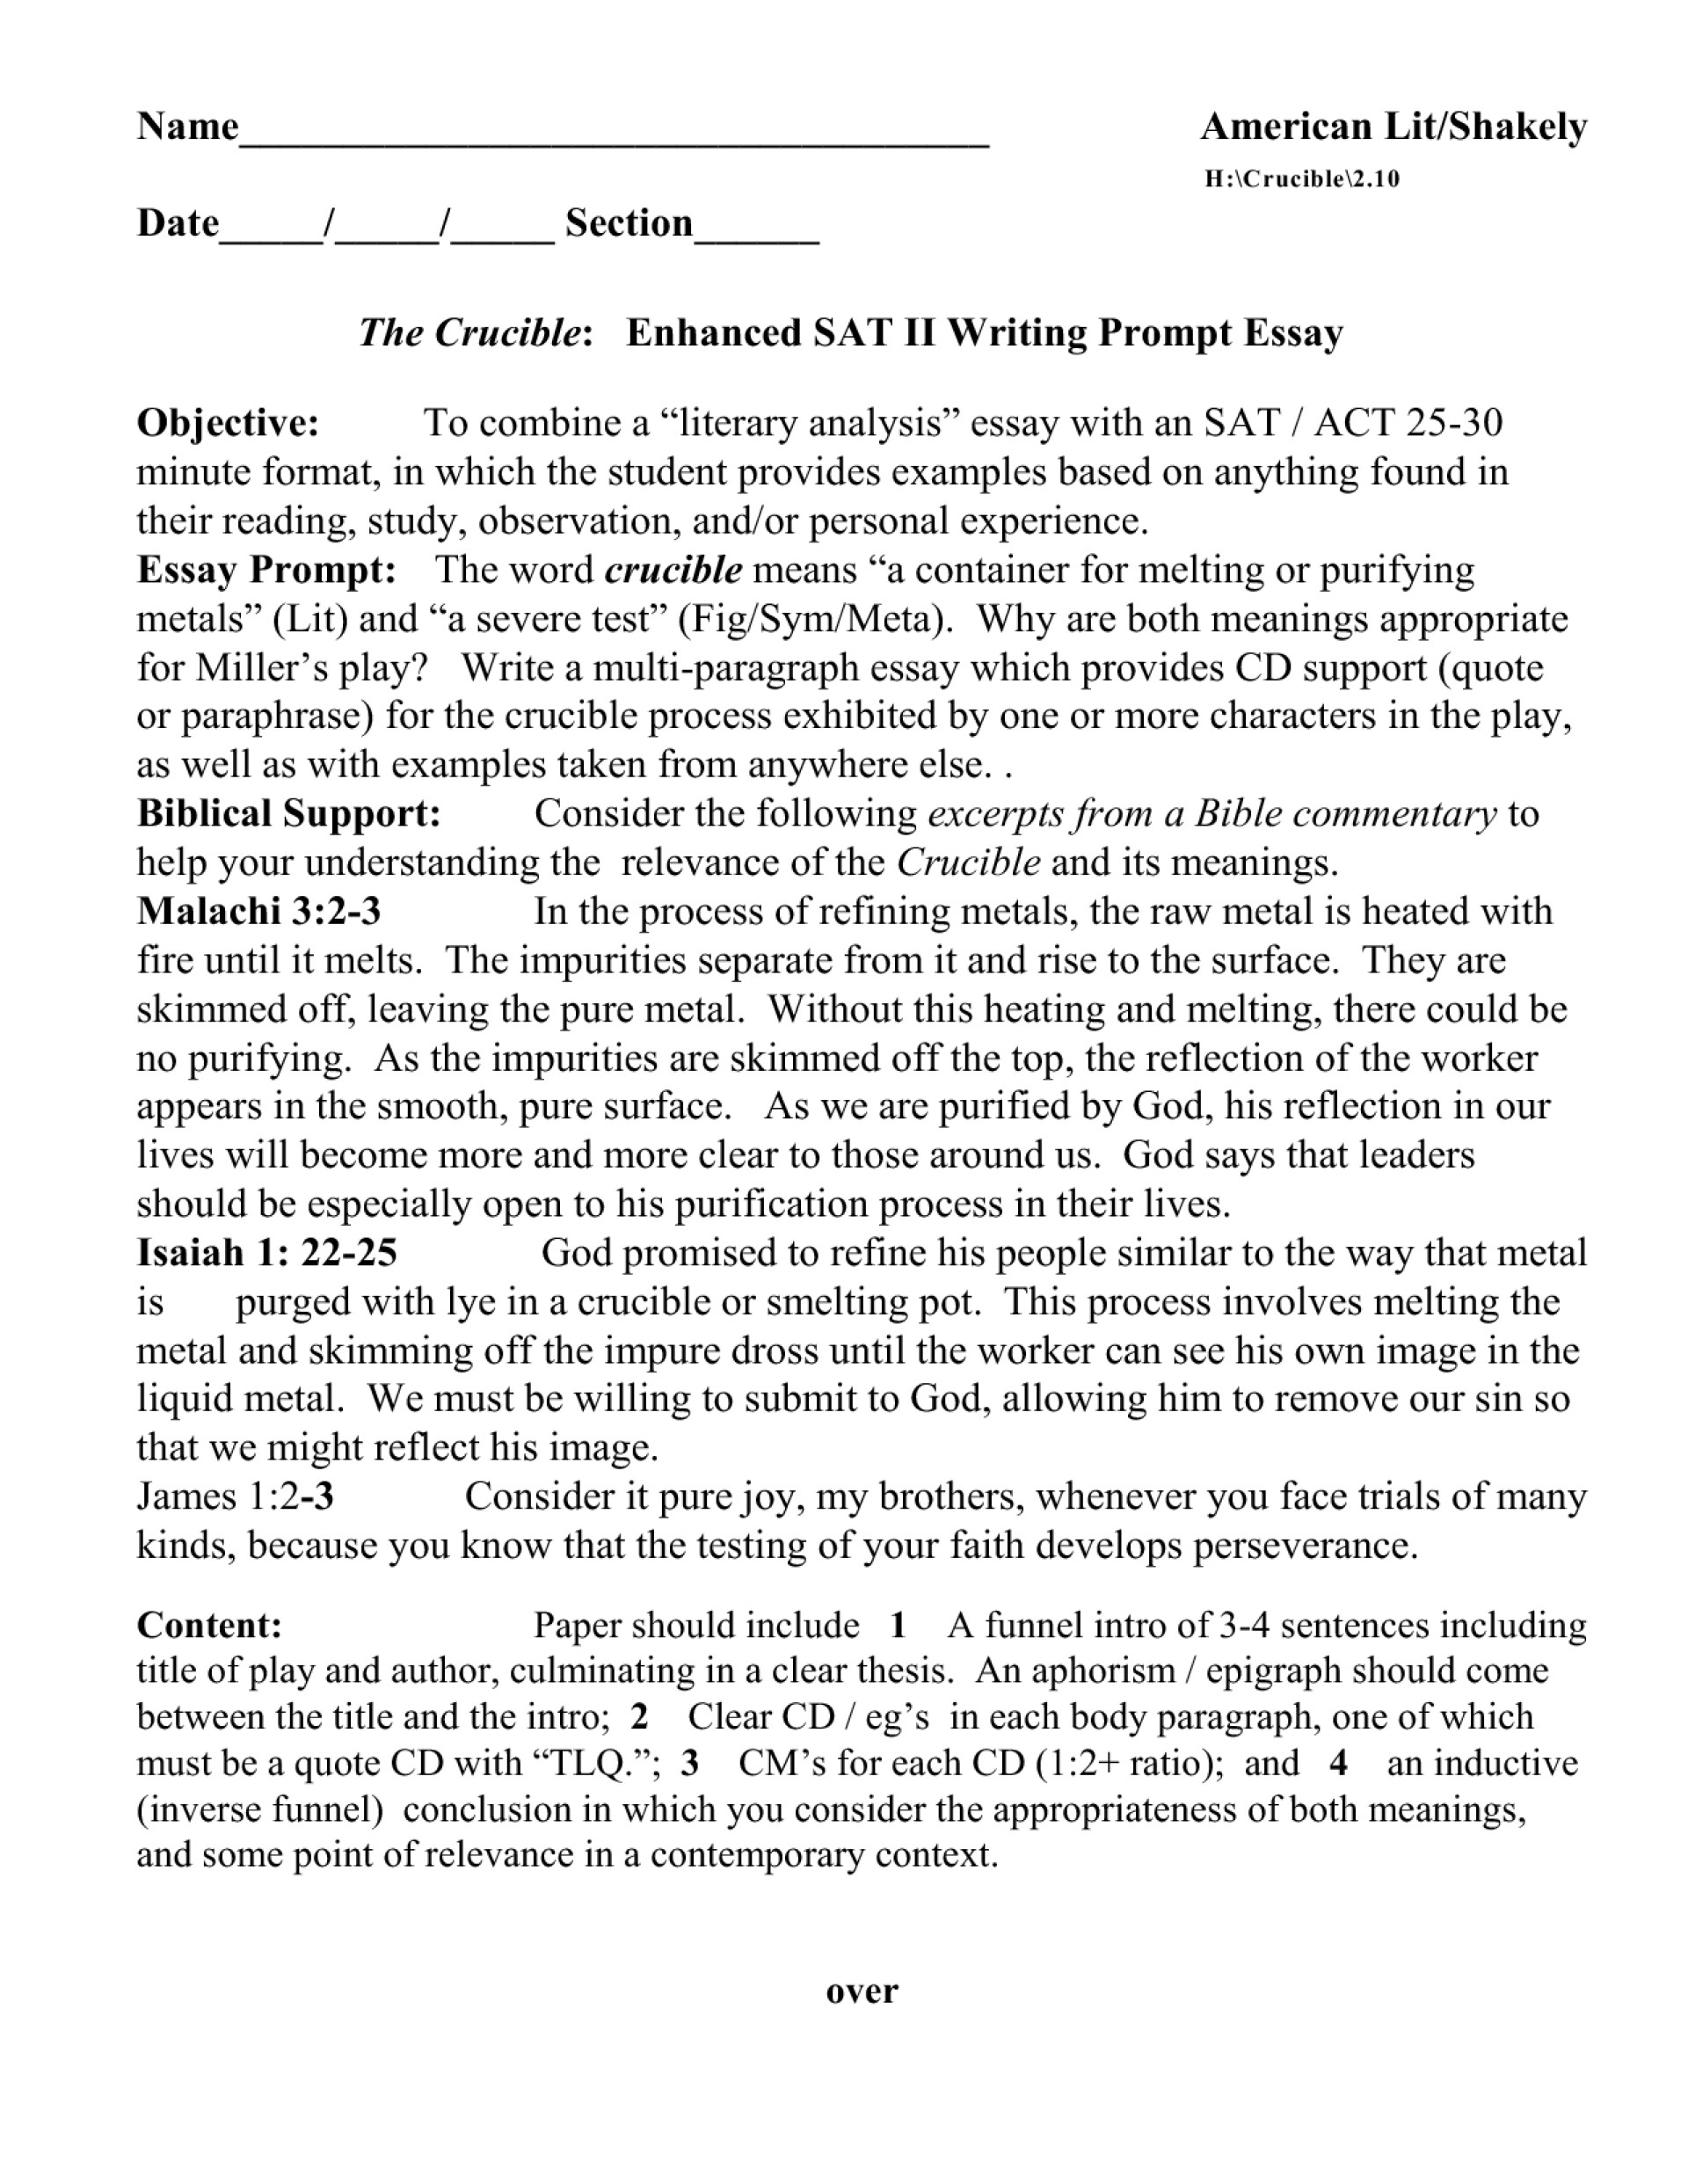 002 Sat Essay Sample Example Quotes Quotesgram Is There An On The L Wondrous Pdf 1920